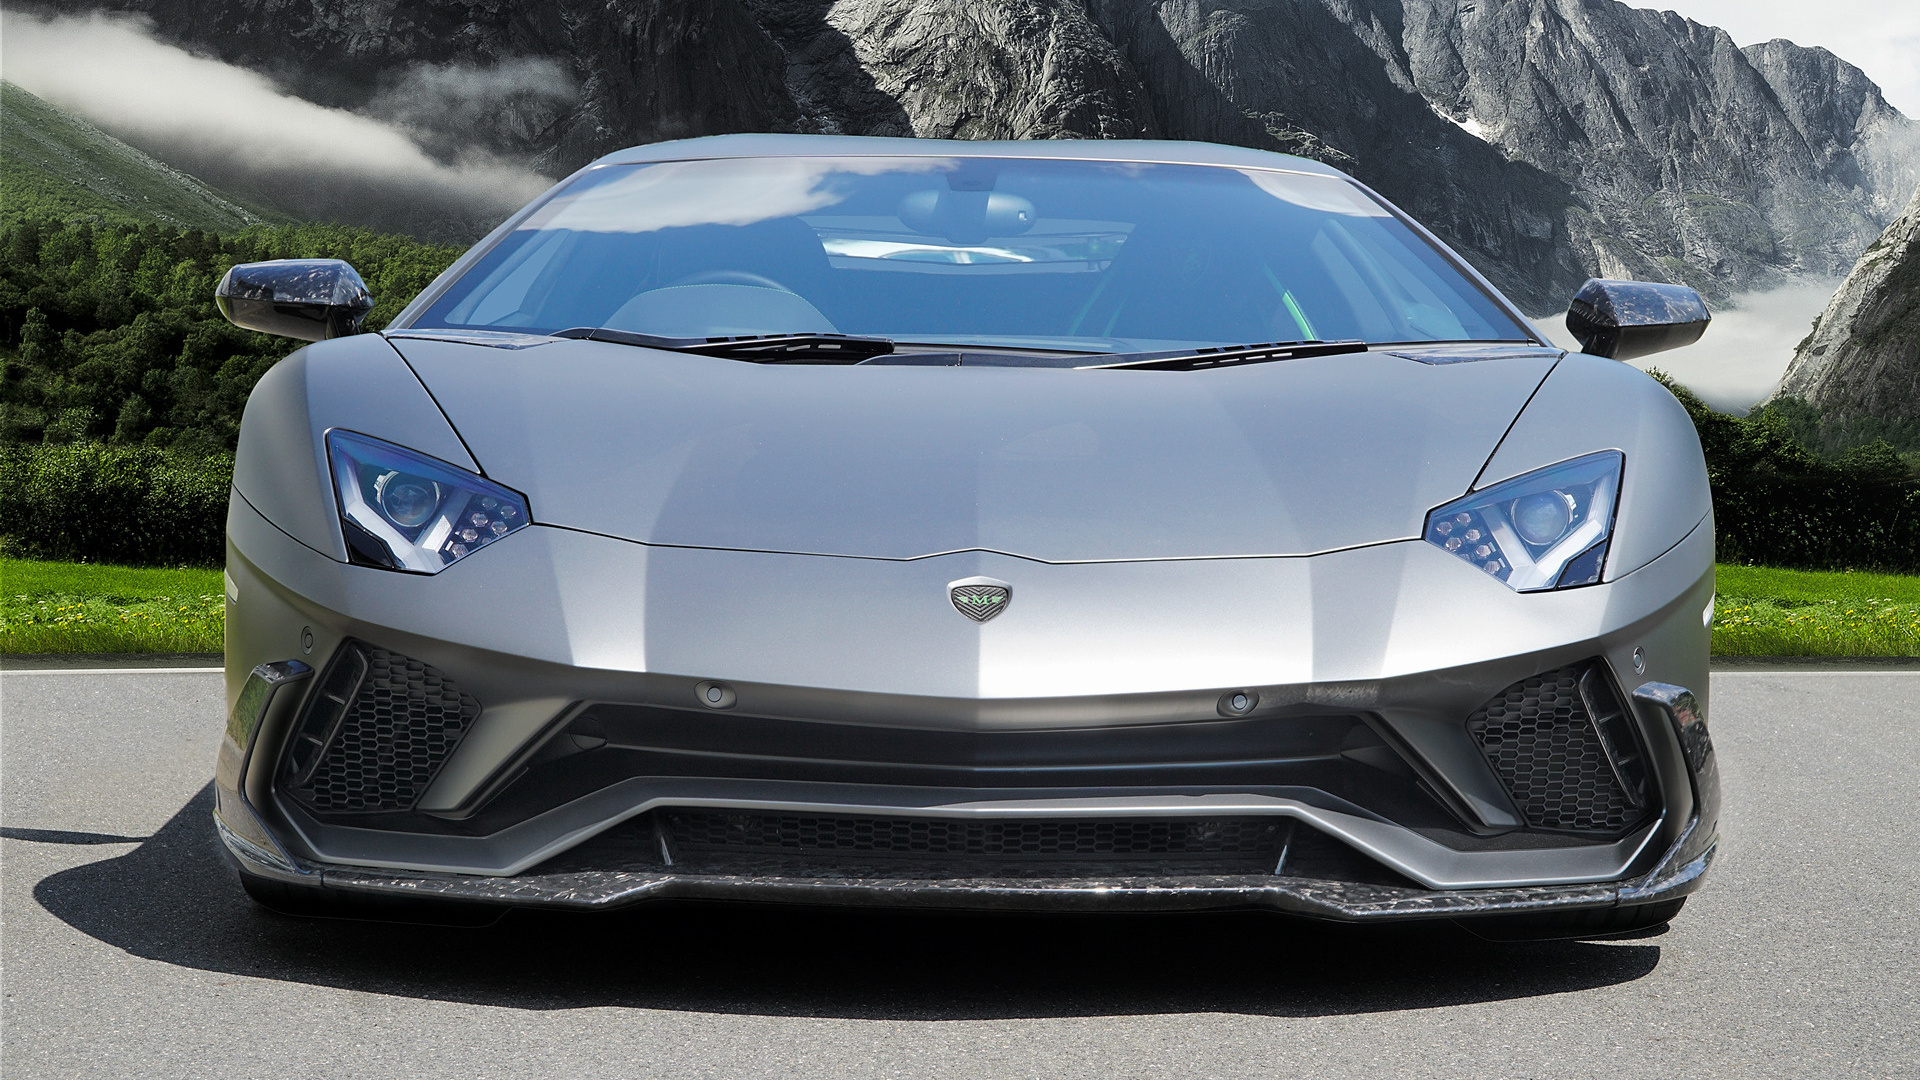 2018 Lamborghini Aventador S by Mansory - Wallpapers and ...